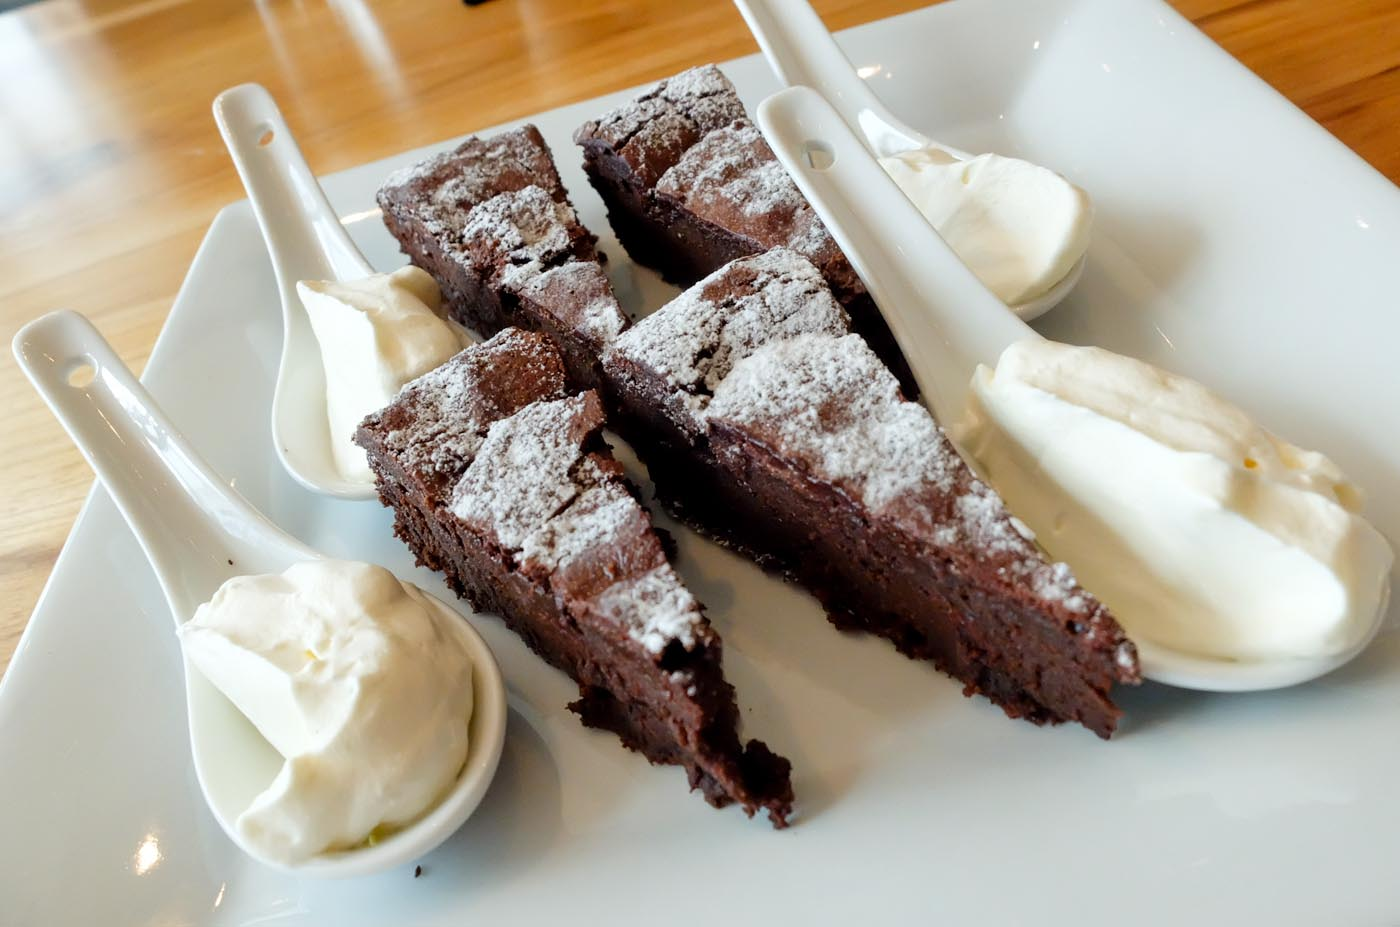 SWEET. The line up of mouth-watering desserts such as this Torta Caprese (Chocolate Cake) is also one for the books